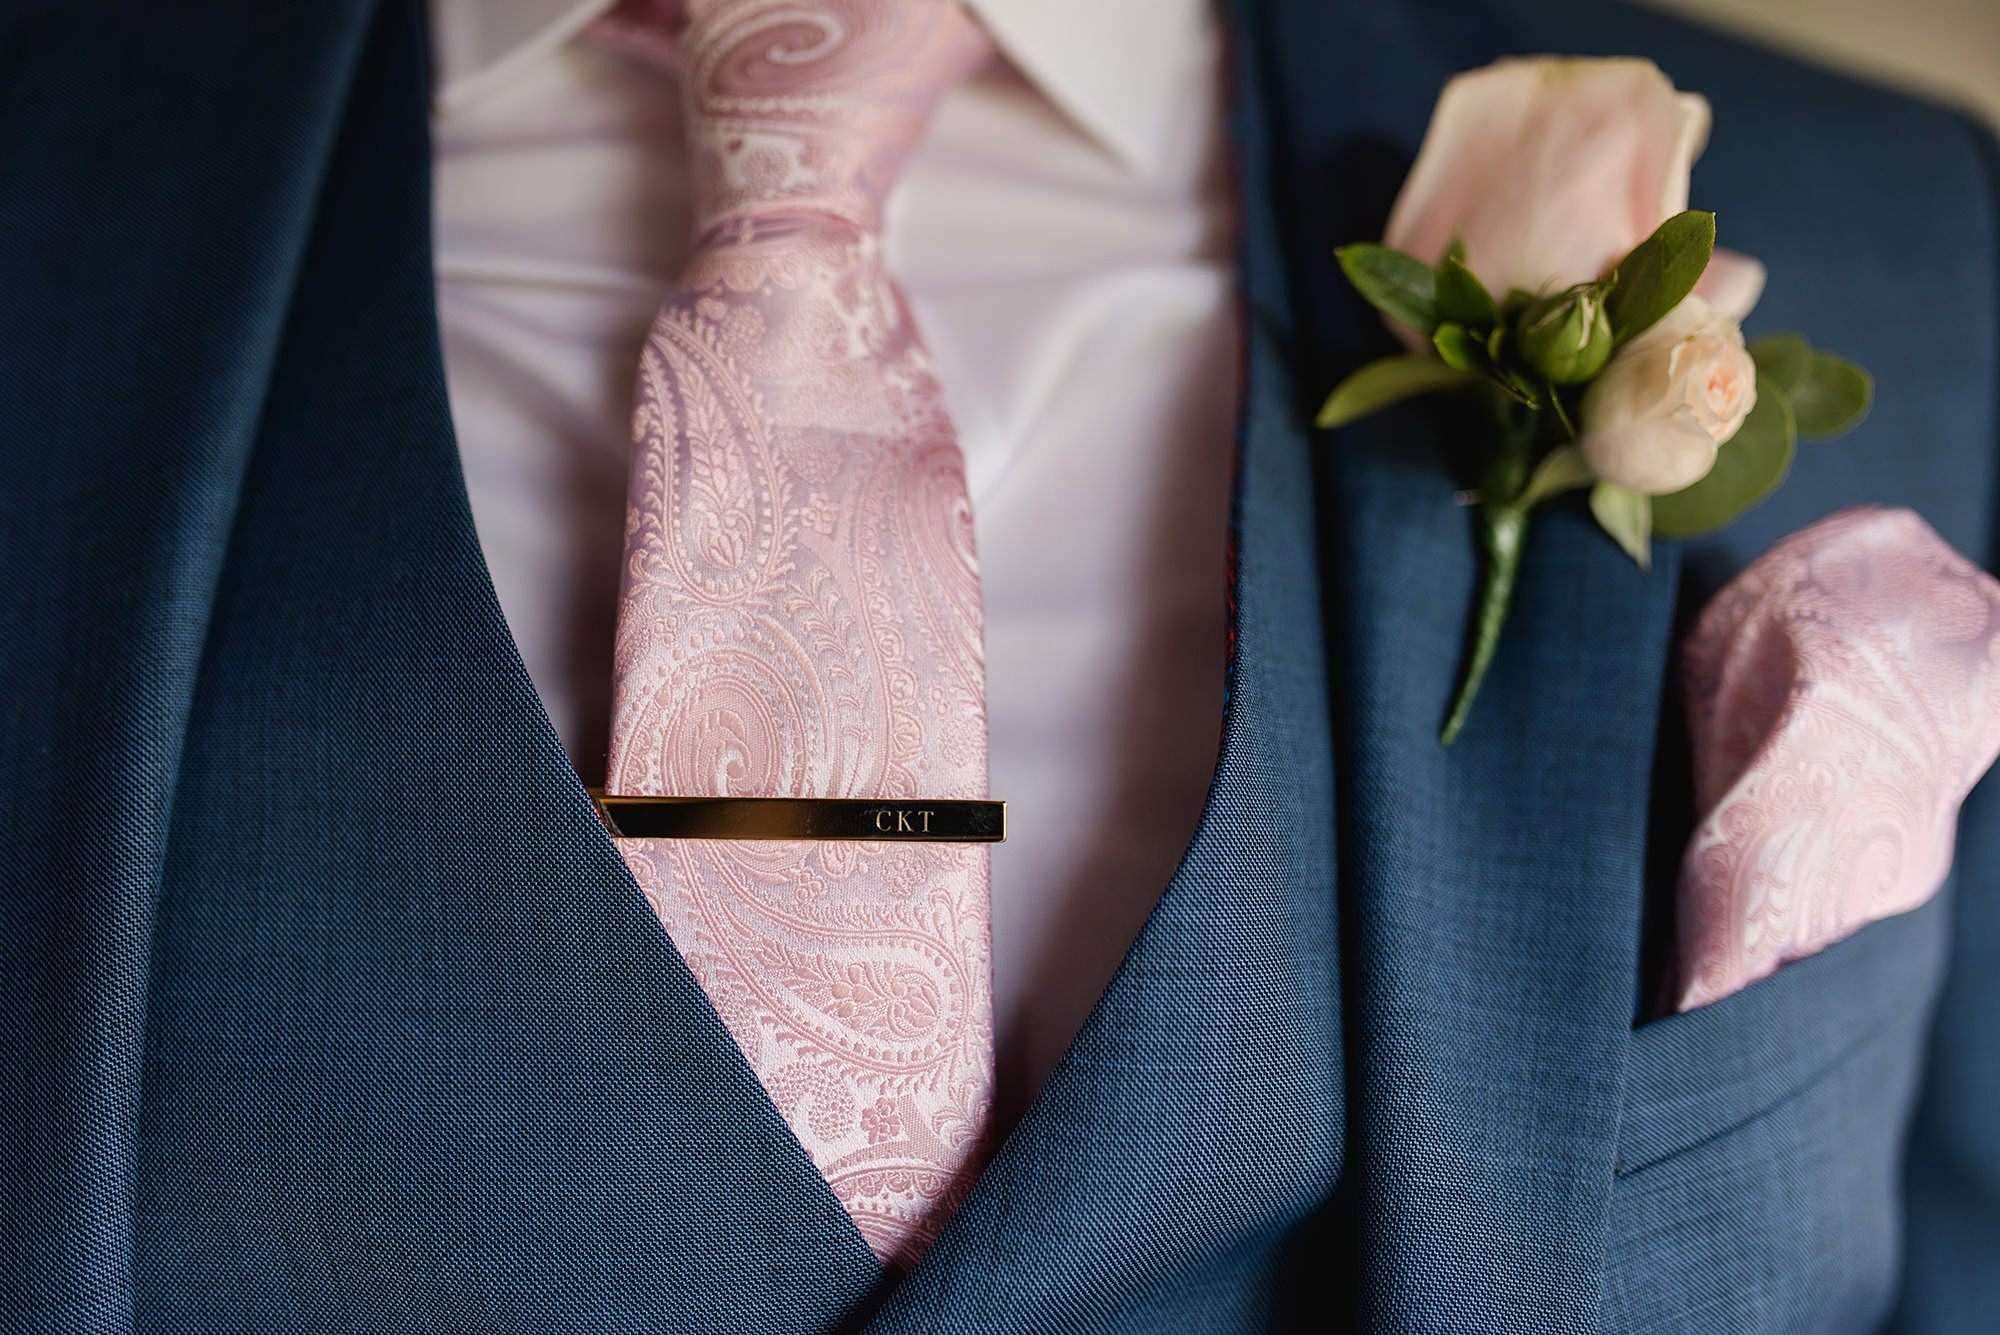 Lillibrooke Manor wedding close up detail of groom's personalised tie pin